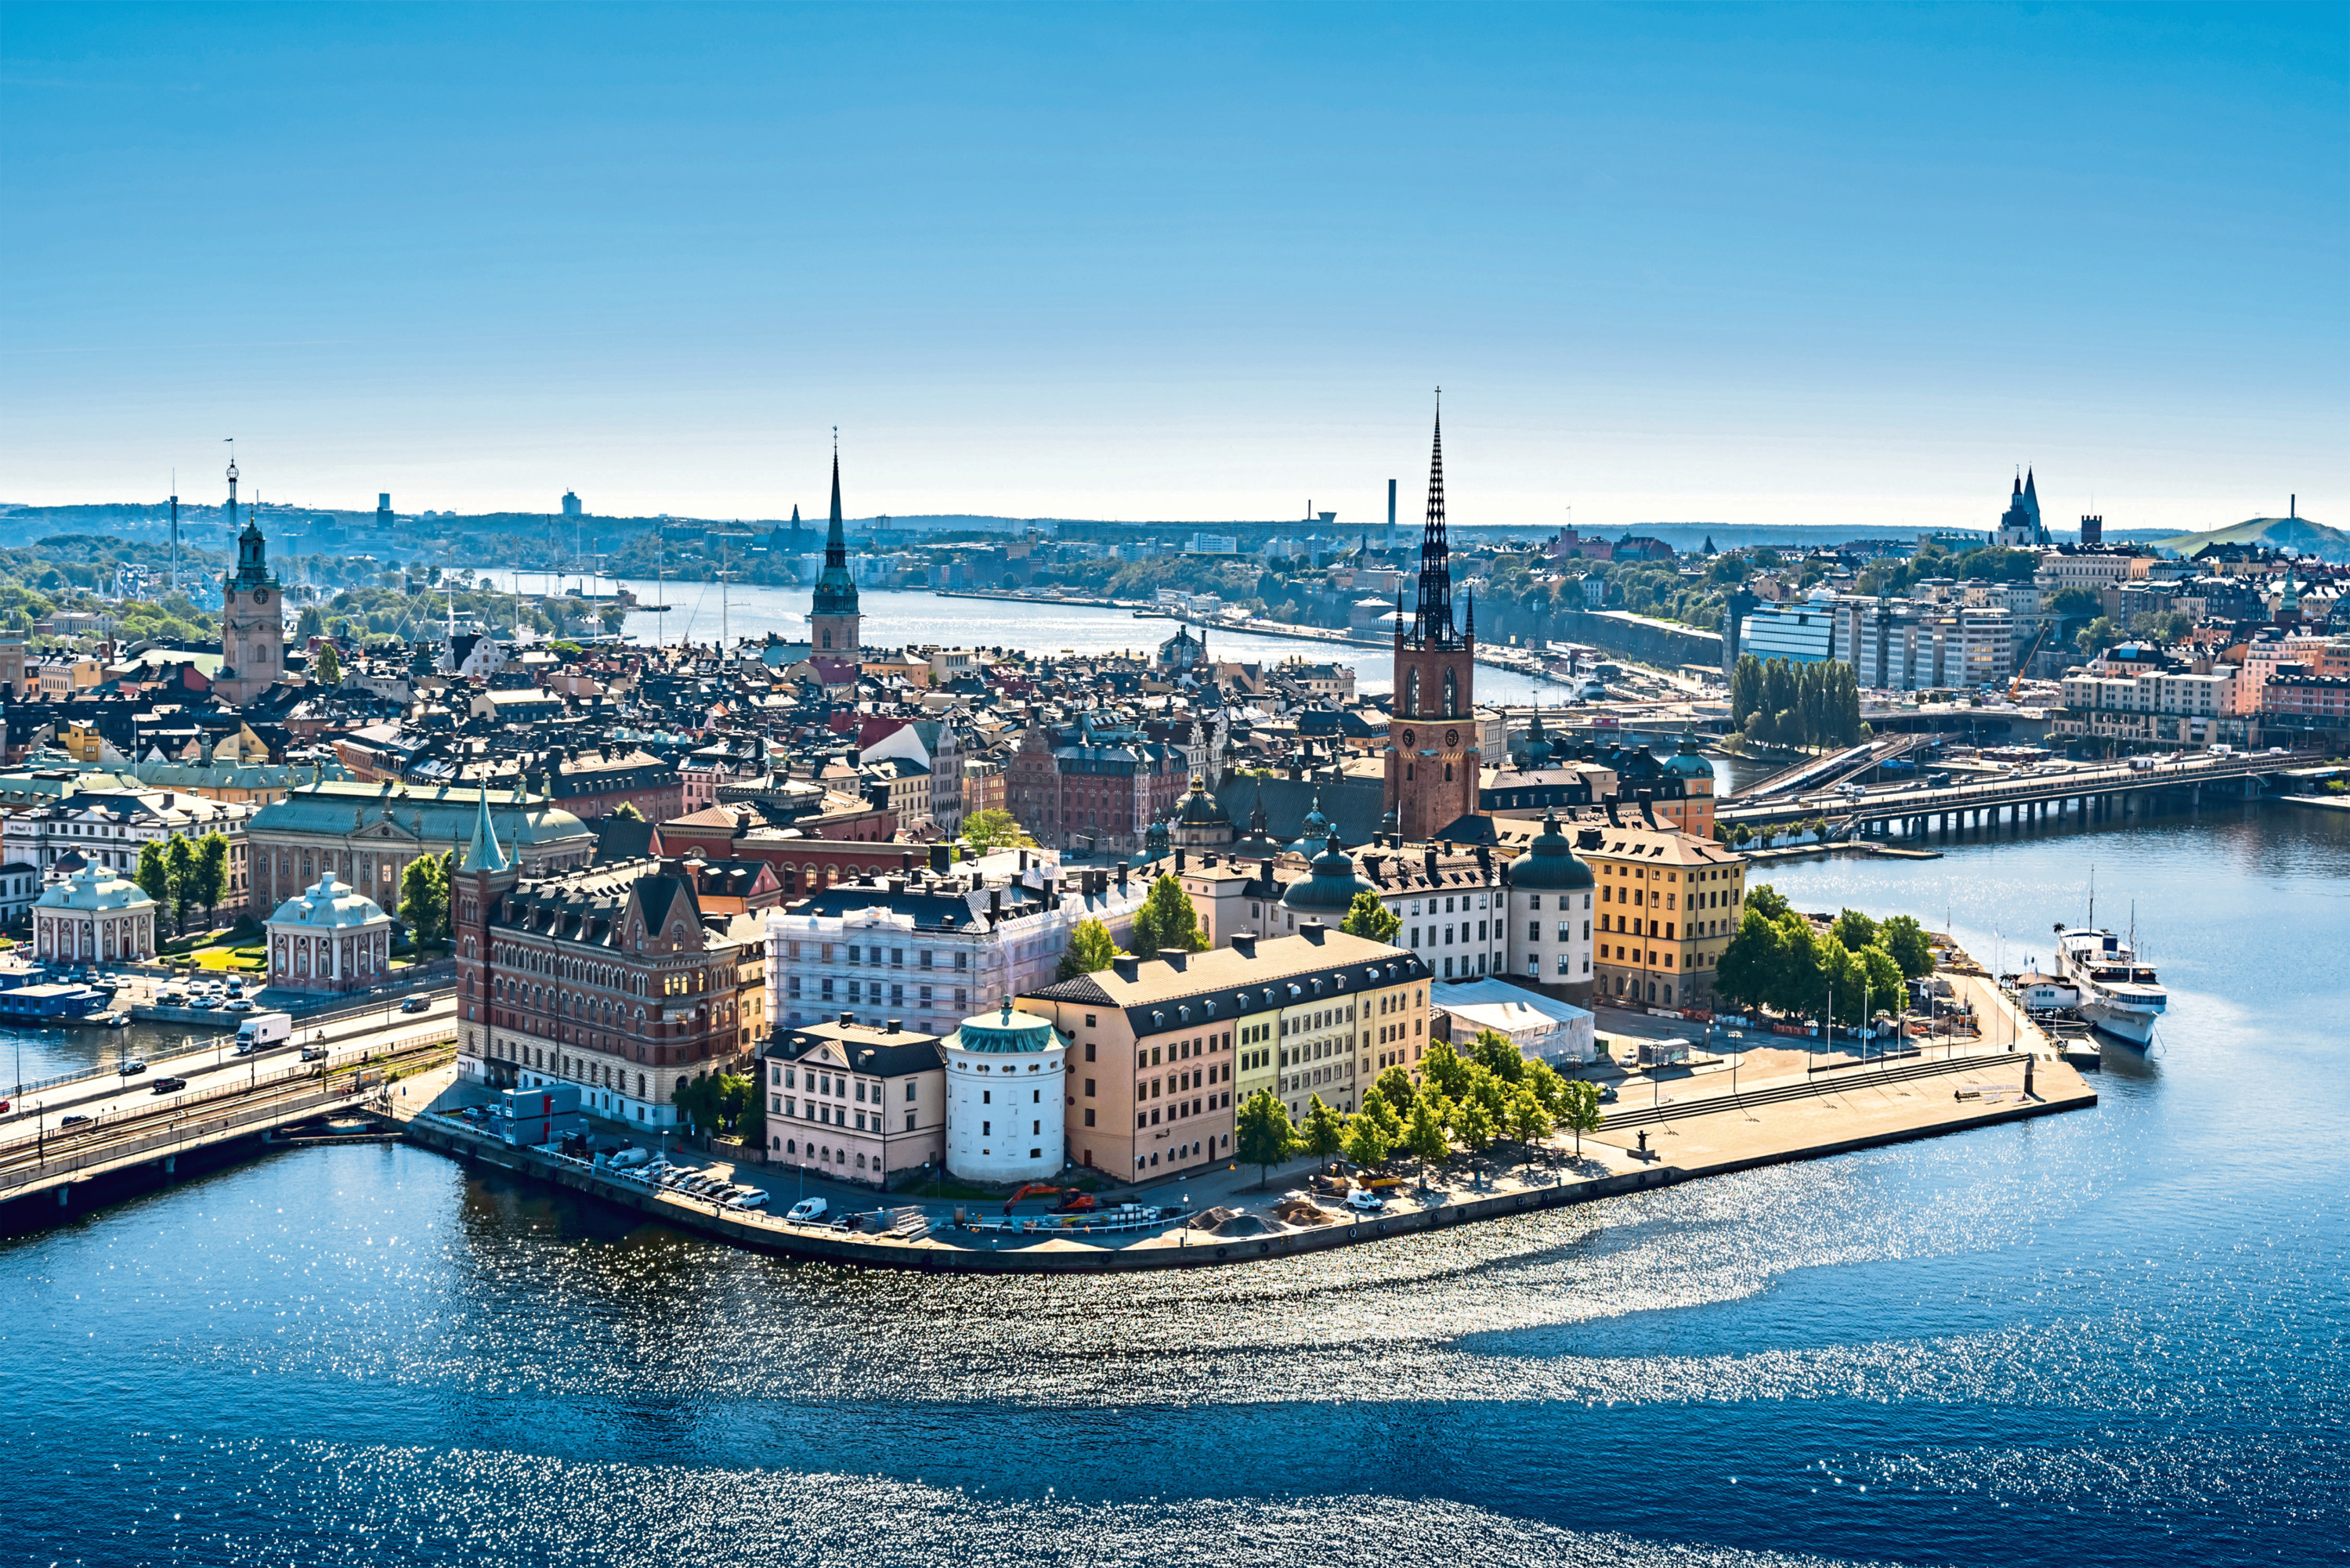 View of the Old Town or Gamla Stan in Stockholm, Sweden